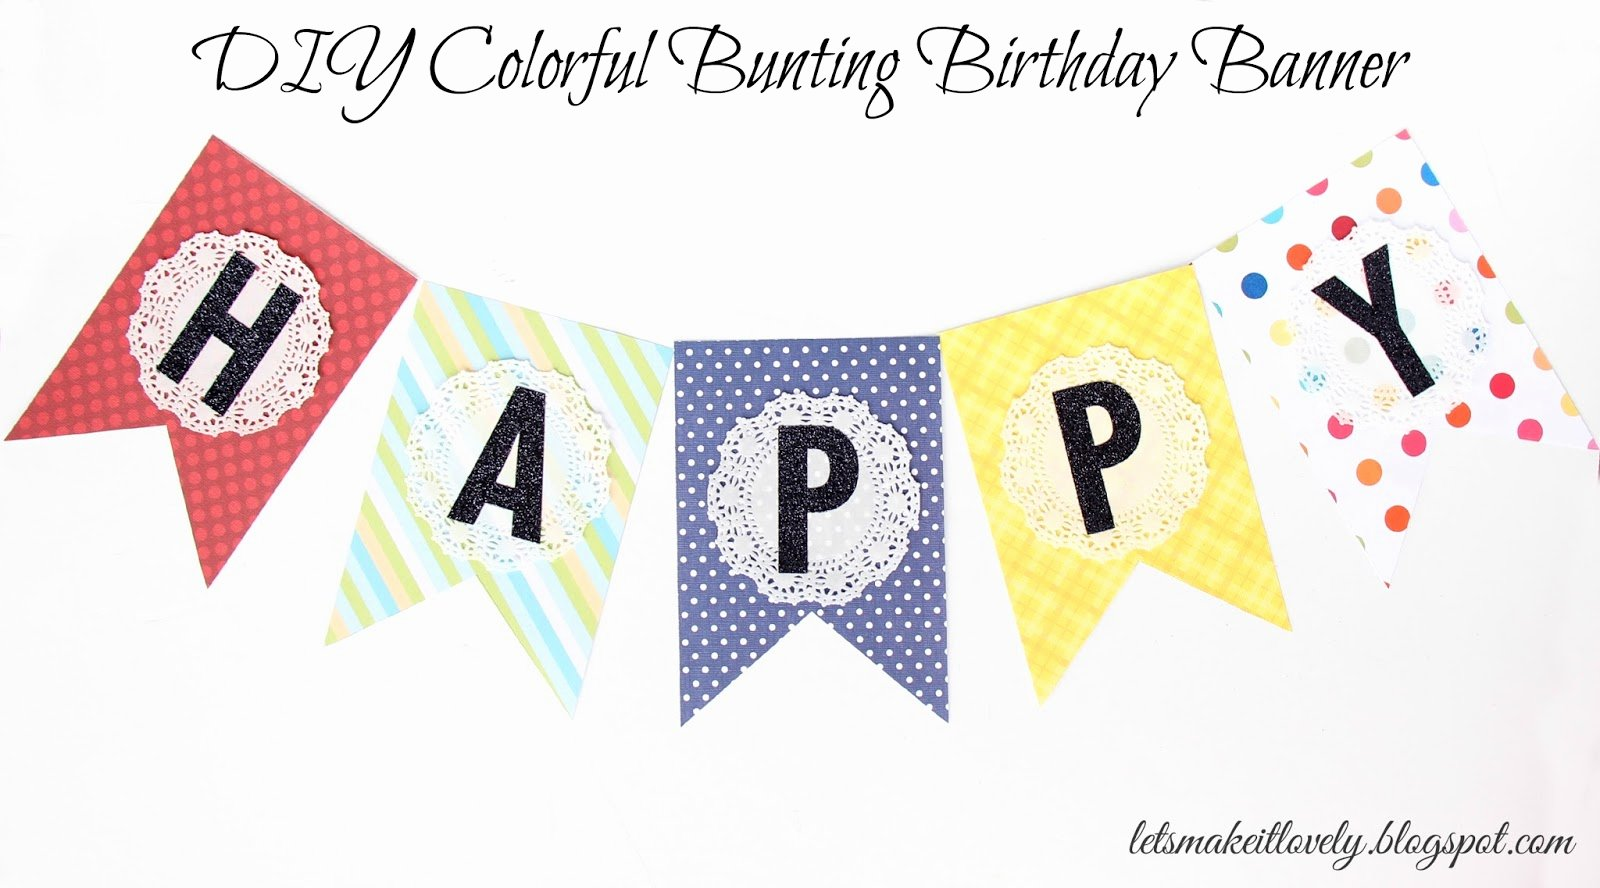 Diy Birthday Banner Template Elegant Let S Make It Lovely Diy Colorful Bunting Birthday Banner